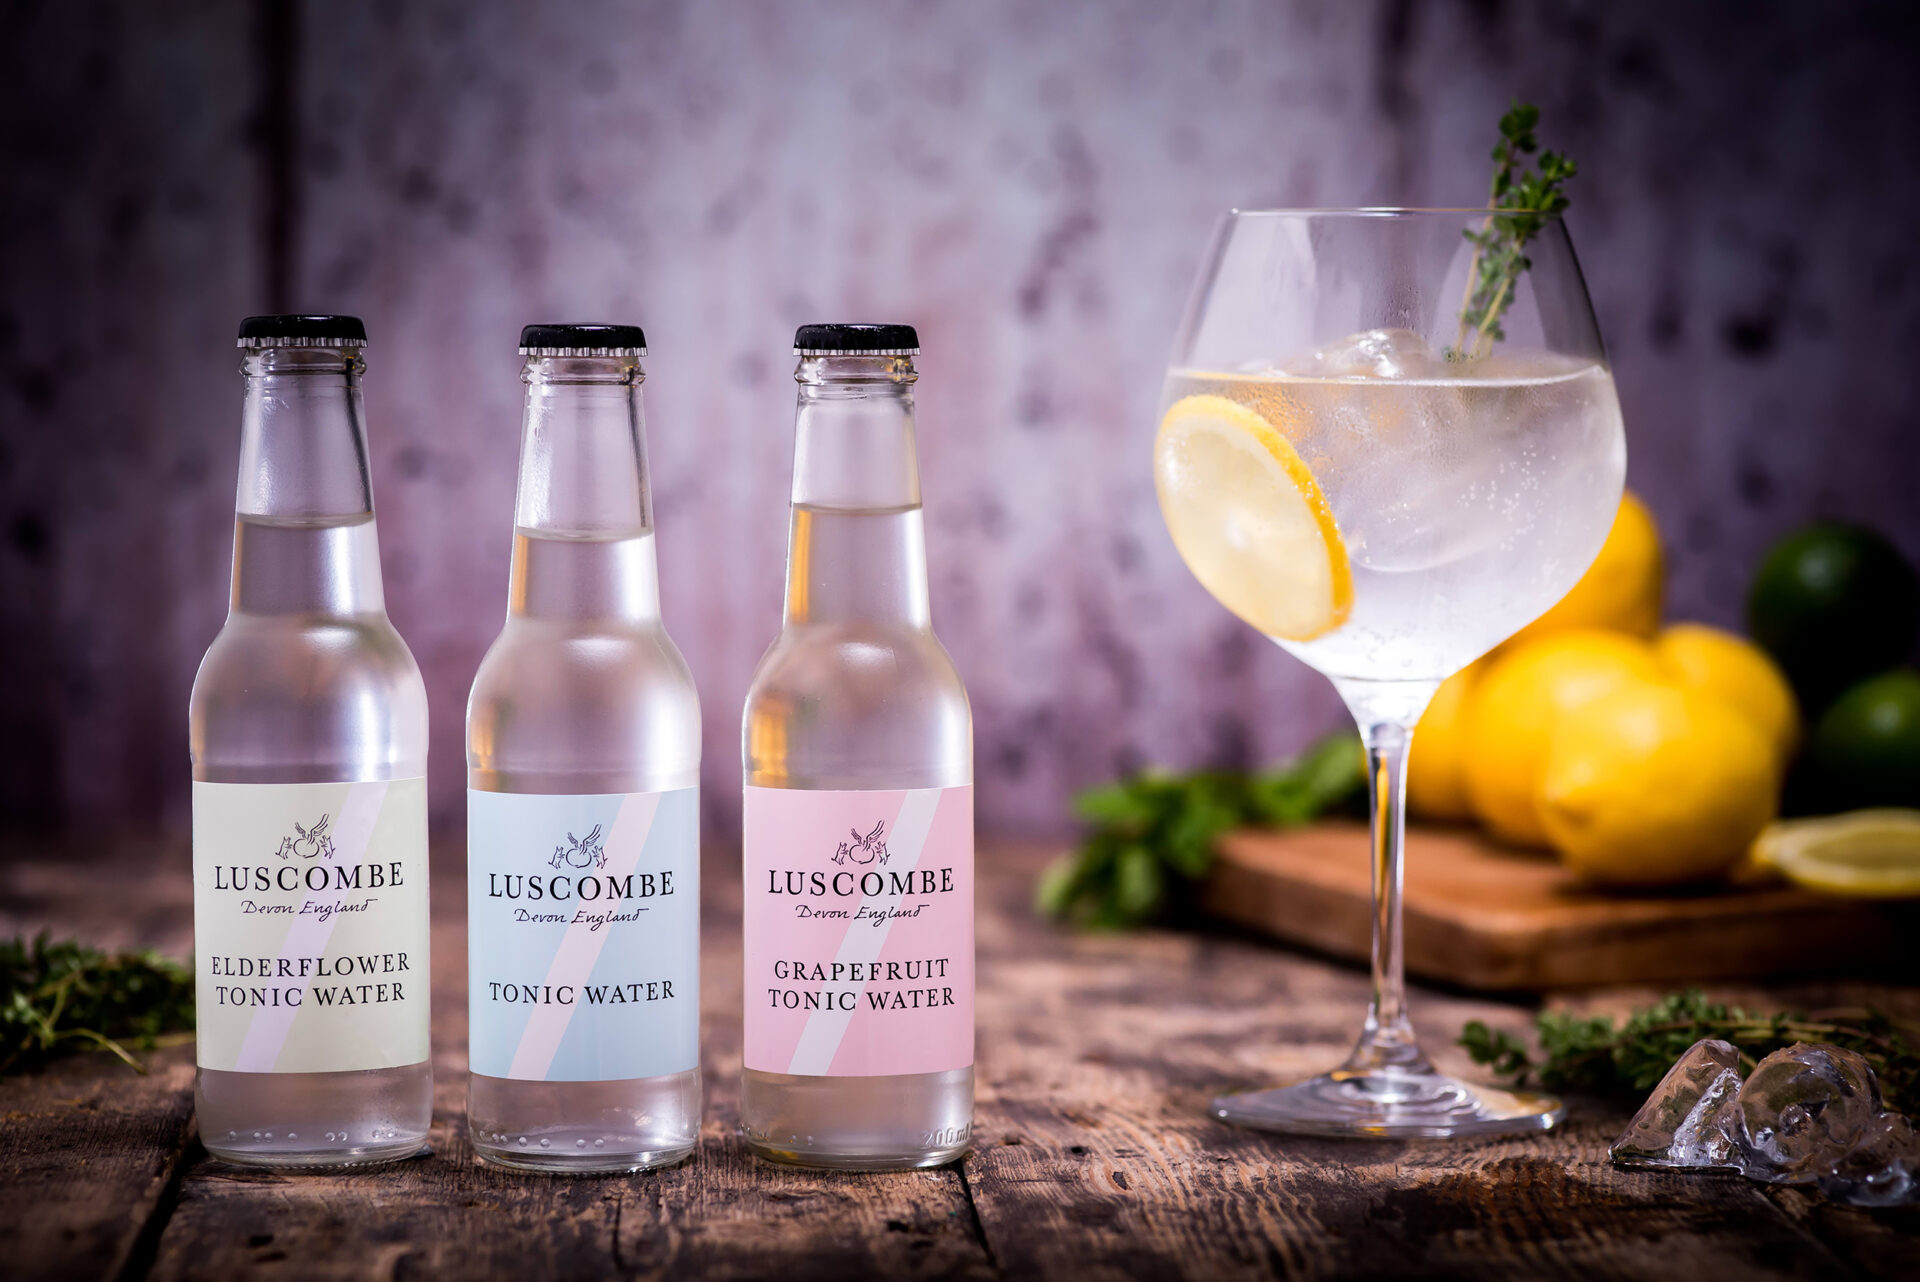 bens-farm-shop-june-blog-luscombes-tonic-water